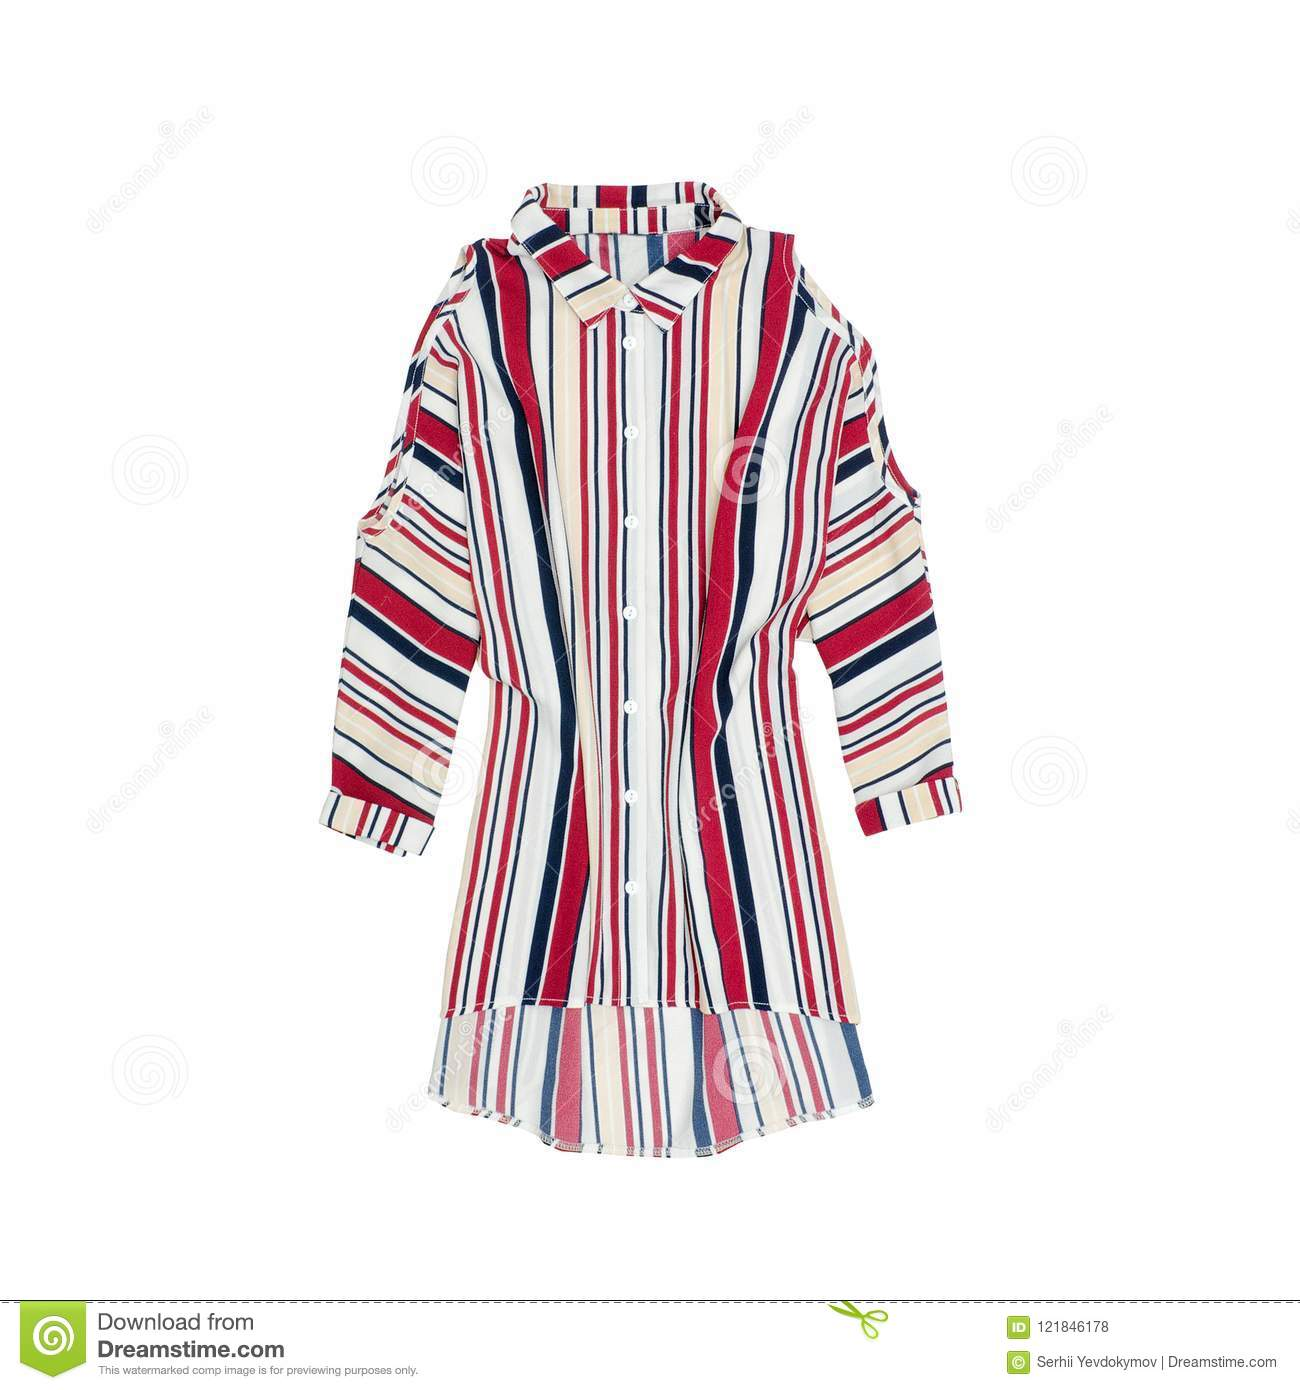 Colour striped shirt on a white background. Isolate. Fashion Con